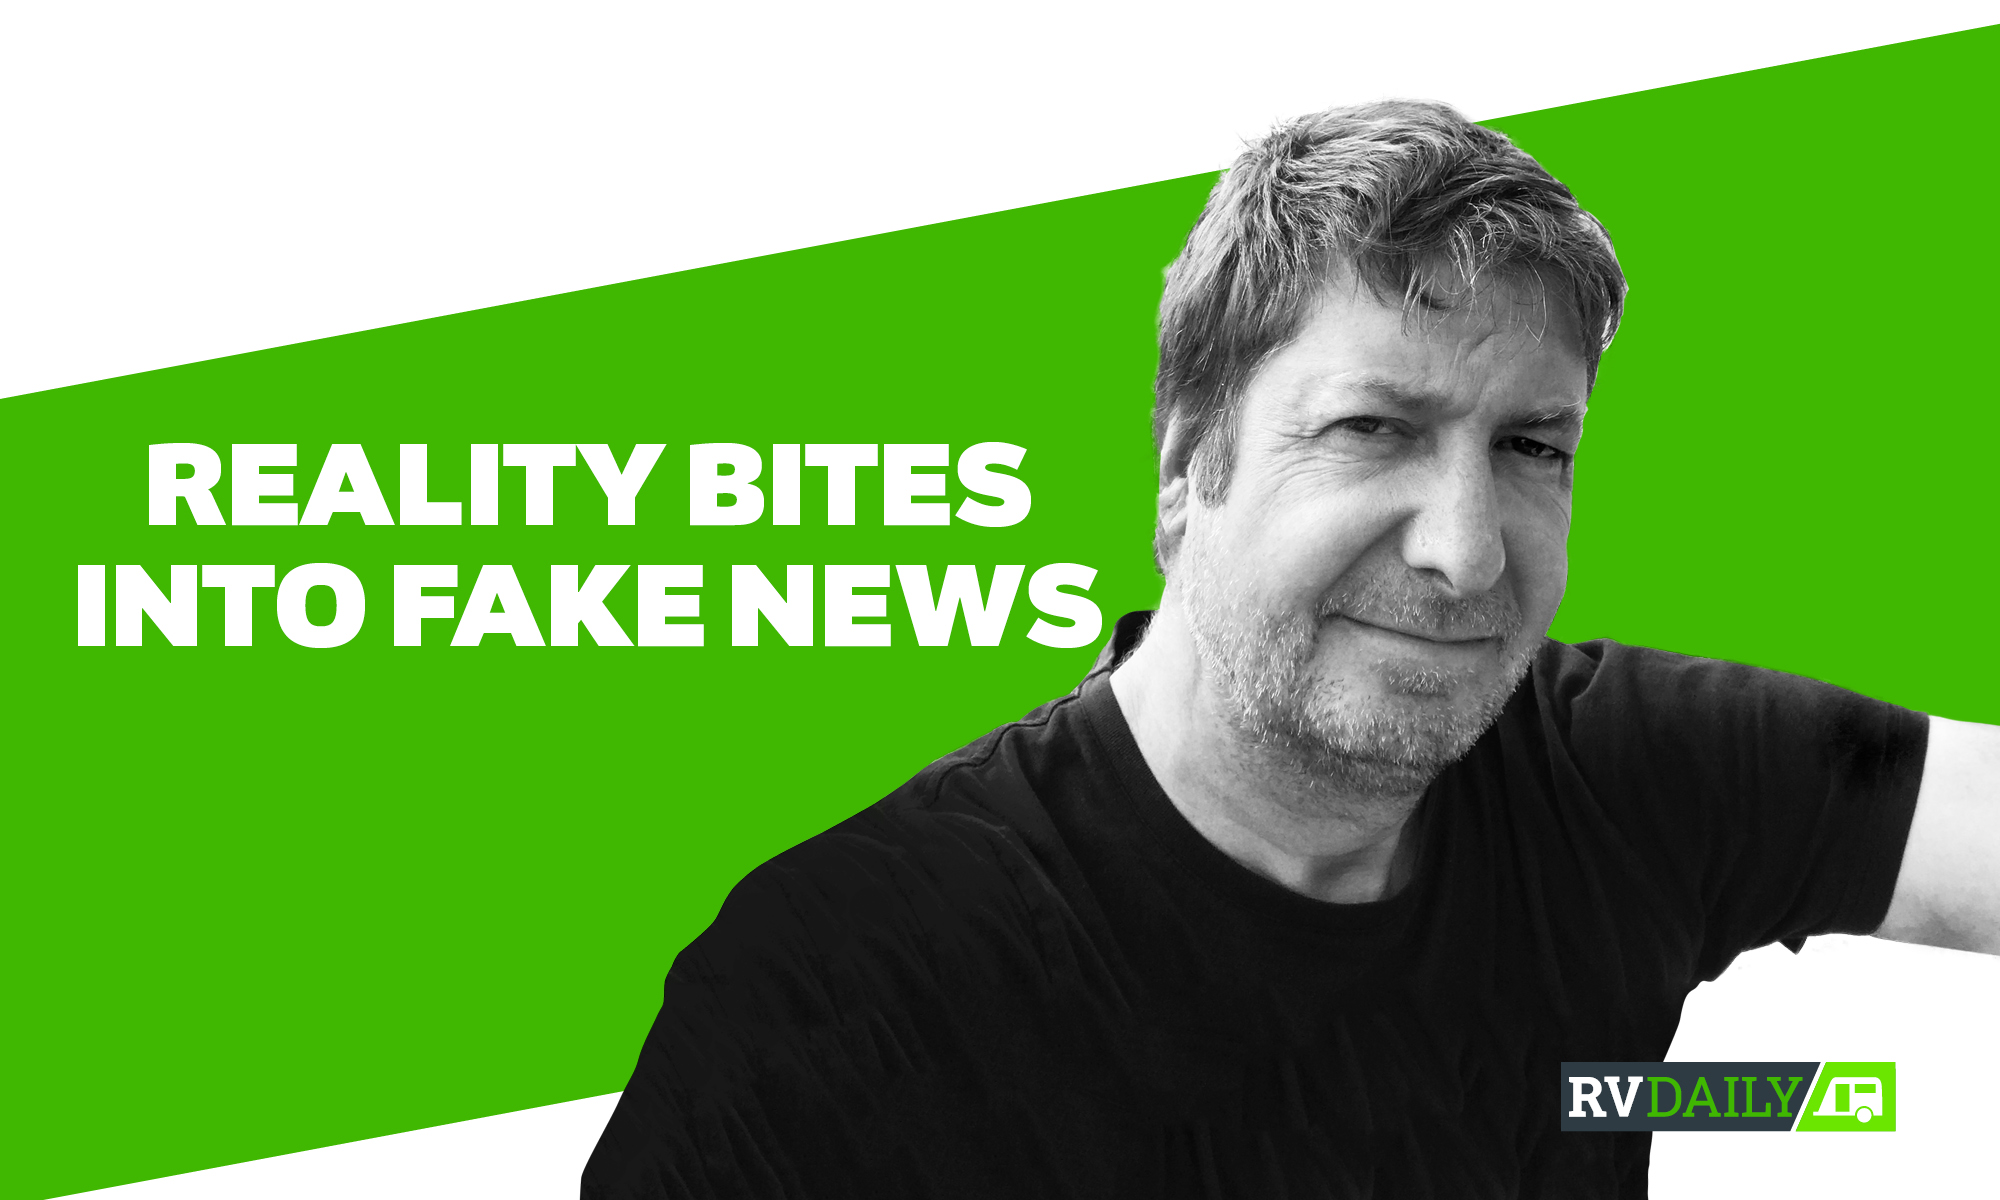 Reality bites into fake news